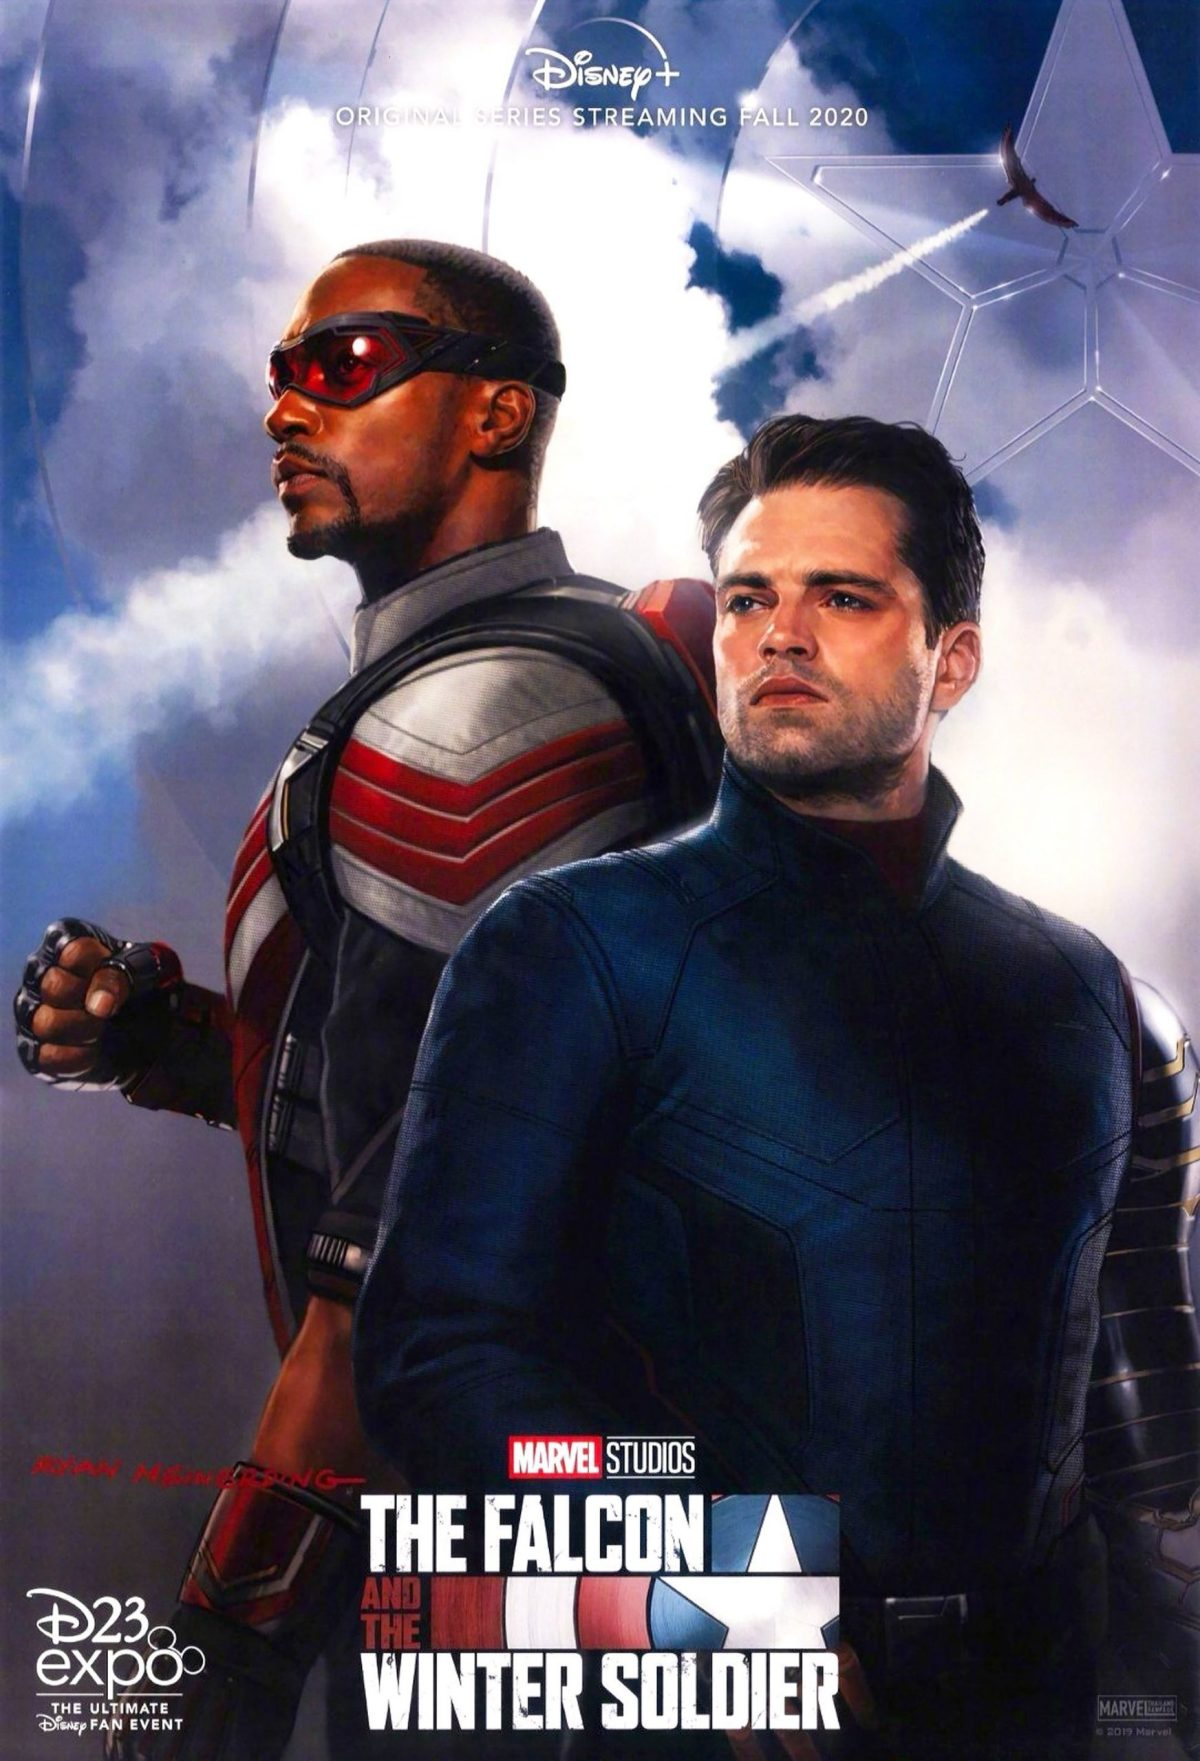 Marvel Phase 4: The Falcon and the Winter Soldier: Sam and Bucky stare off into the distance decked out in new costumes.